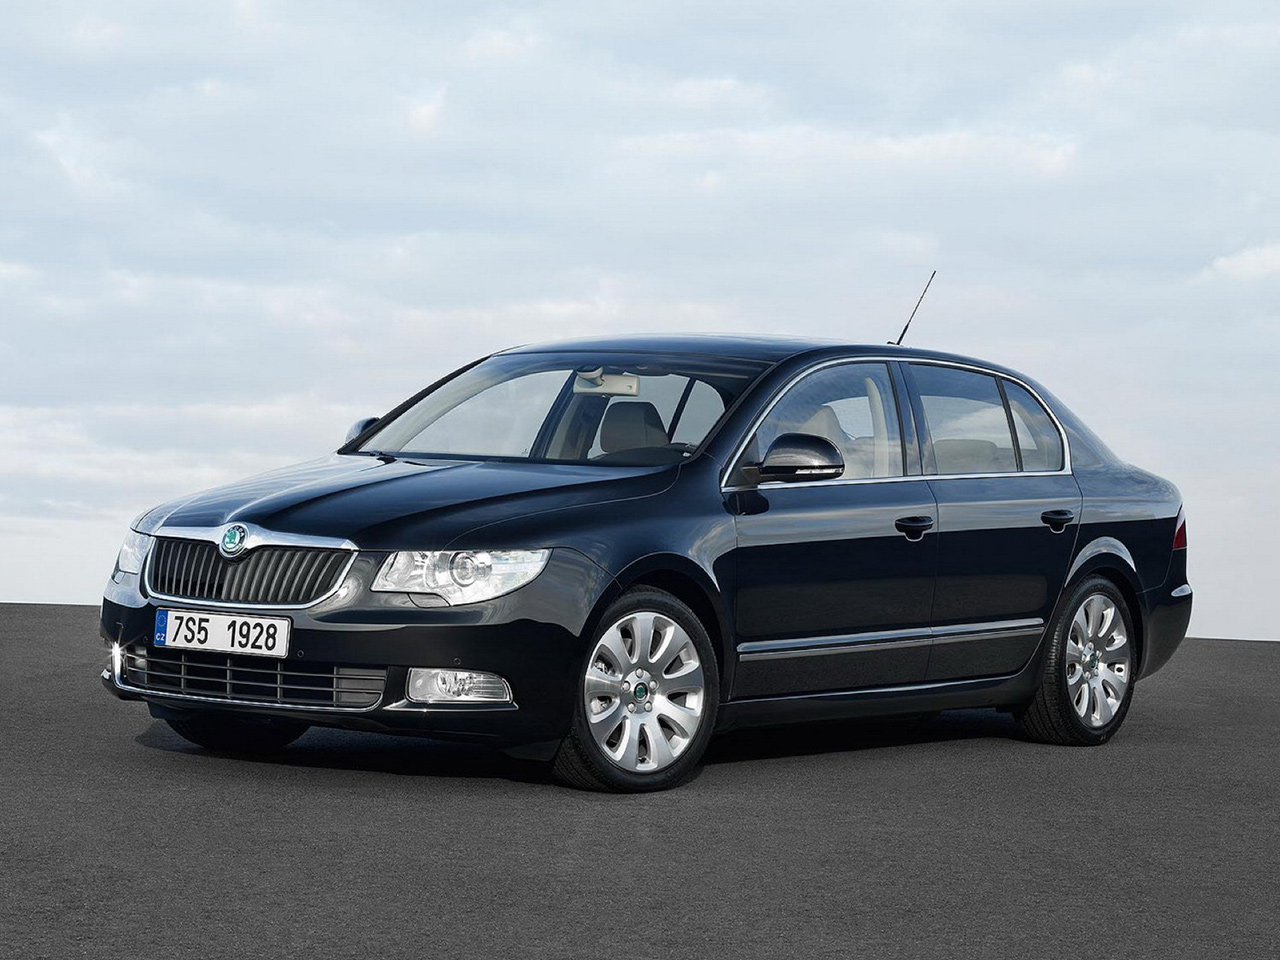 2012 skoda superb ii b6 pictures information and specs auto. Black Bedroom Furniture Sets. Home Design Ideas